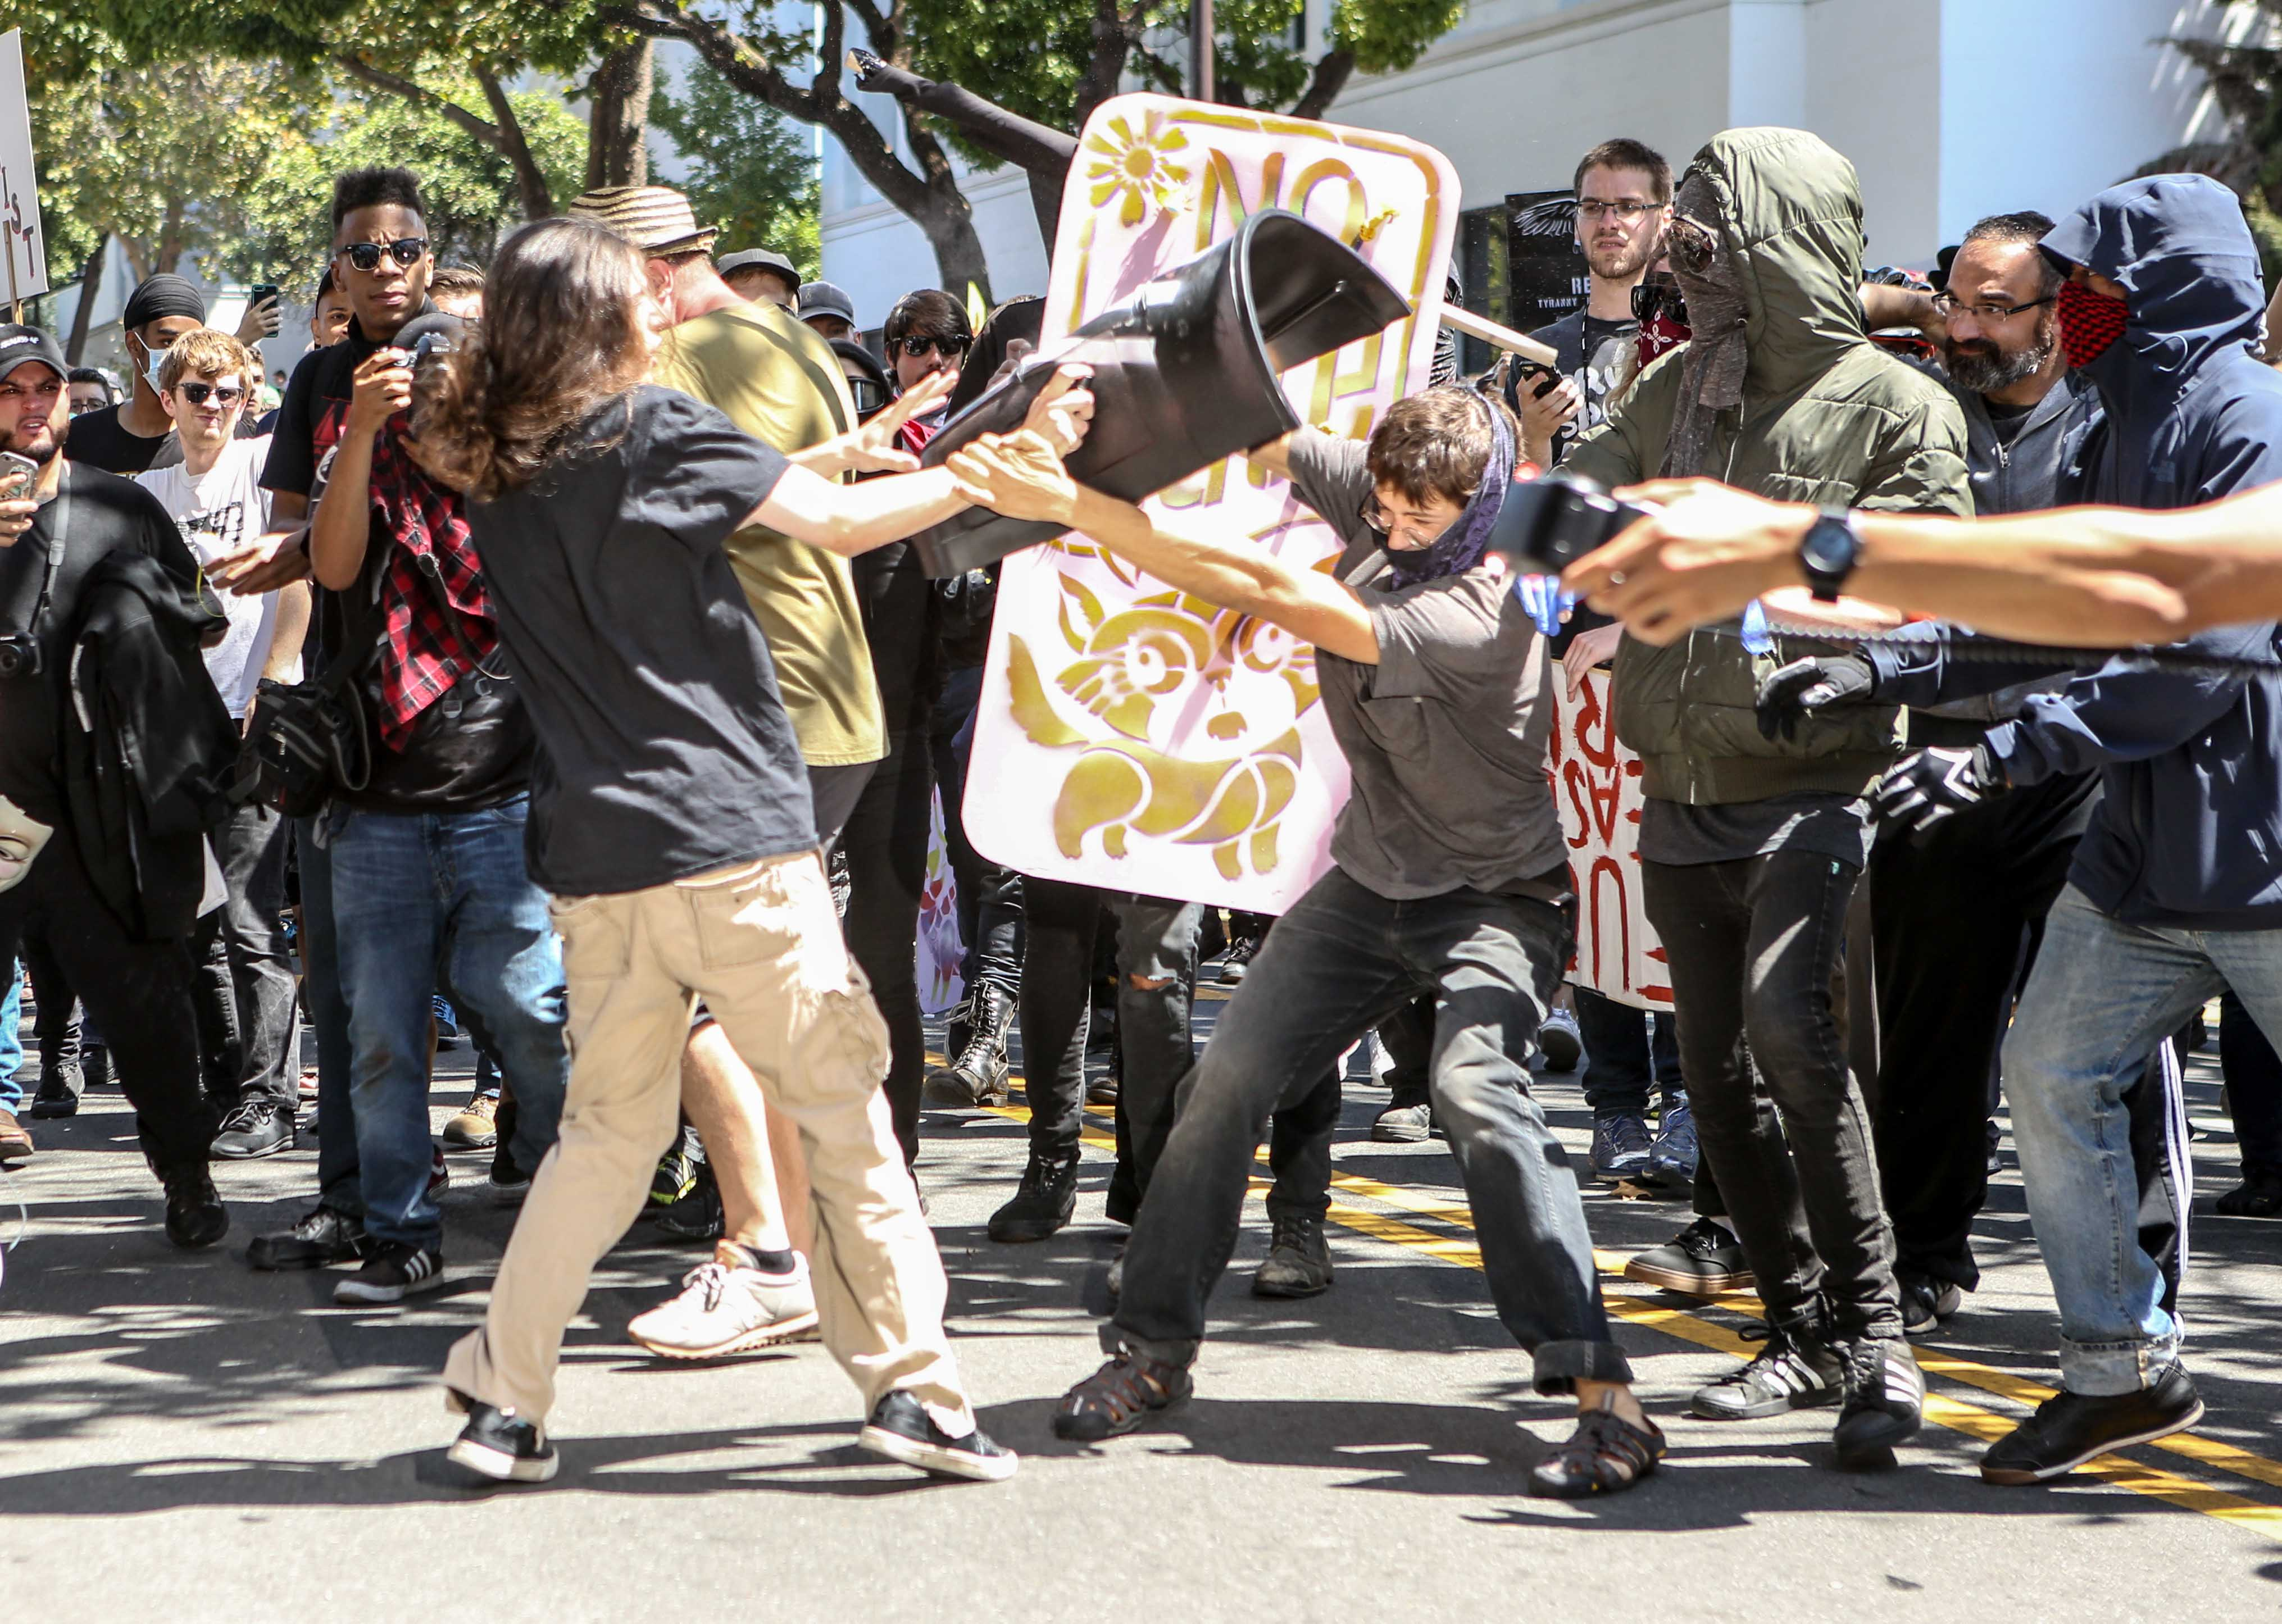 No-To-Marxism rally members and counter protesters clash on Aug. 27, 2017 at Martin Luther King Park Jr. Civic Center Park in Berkeley, California.